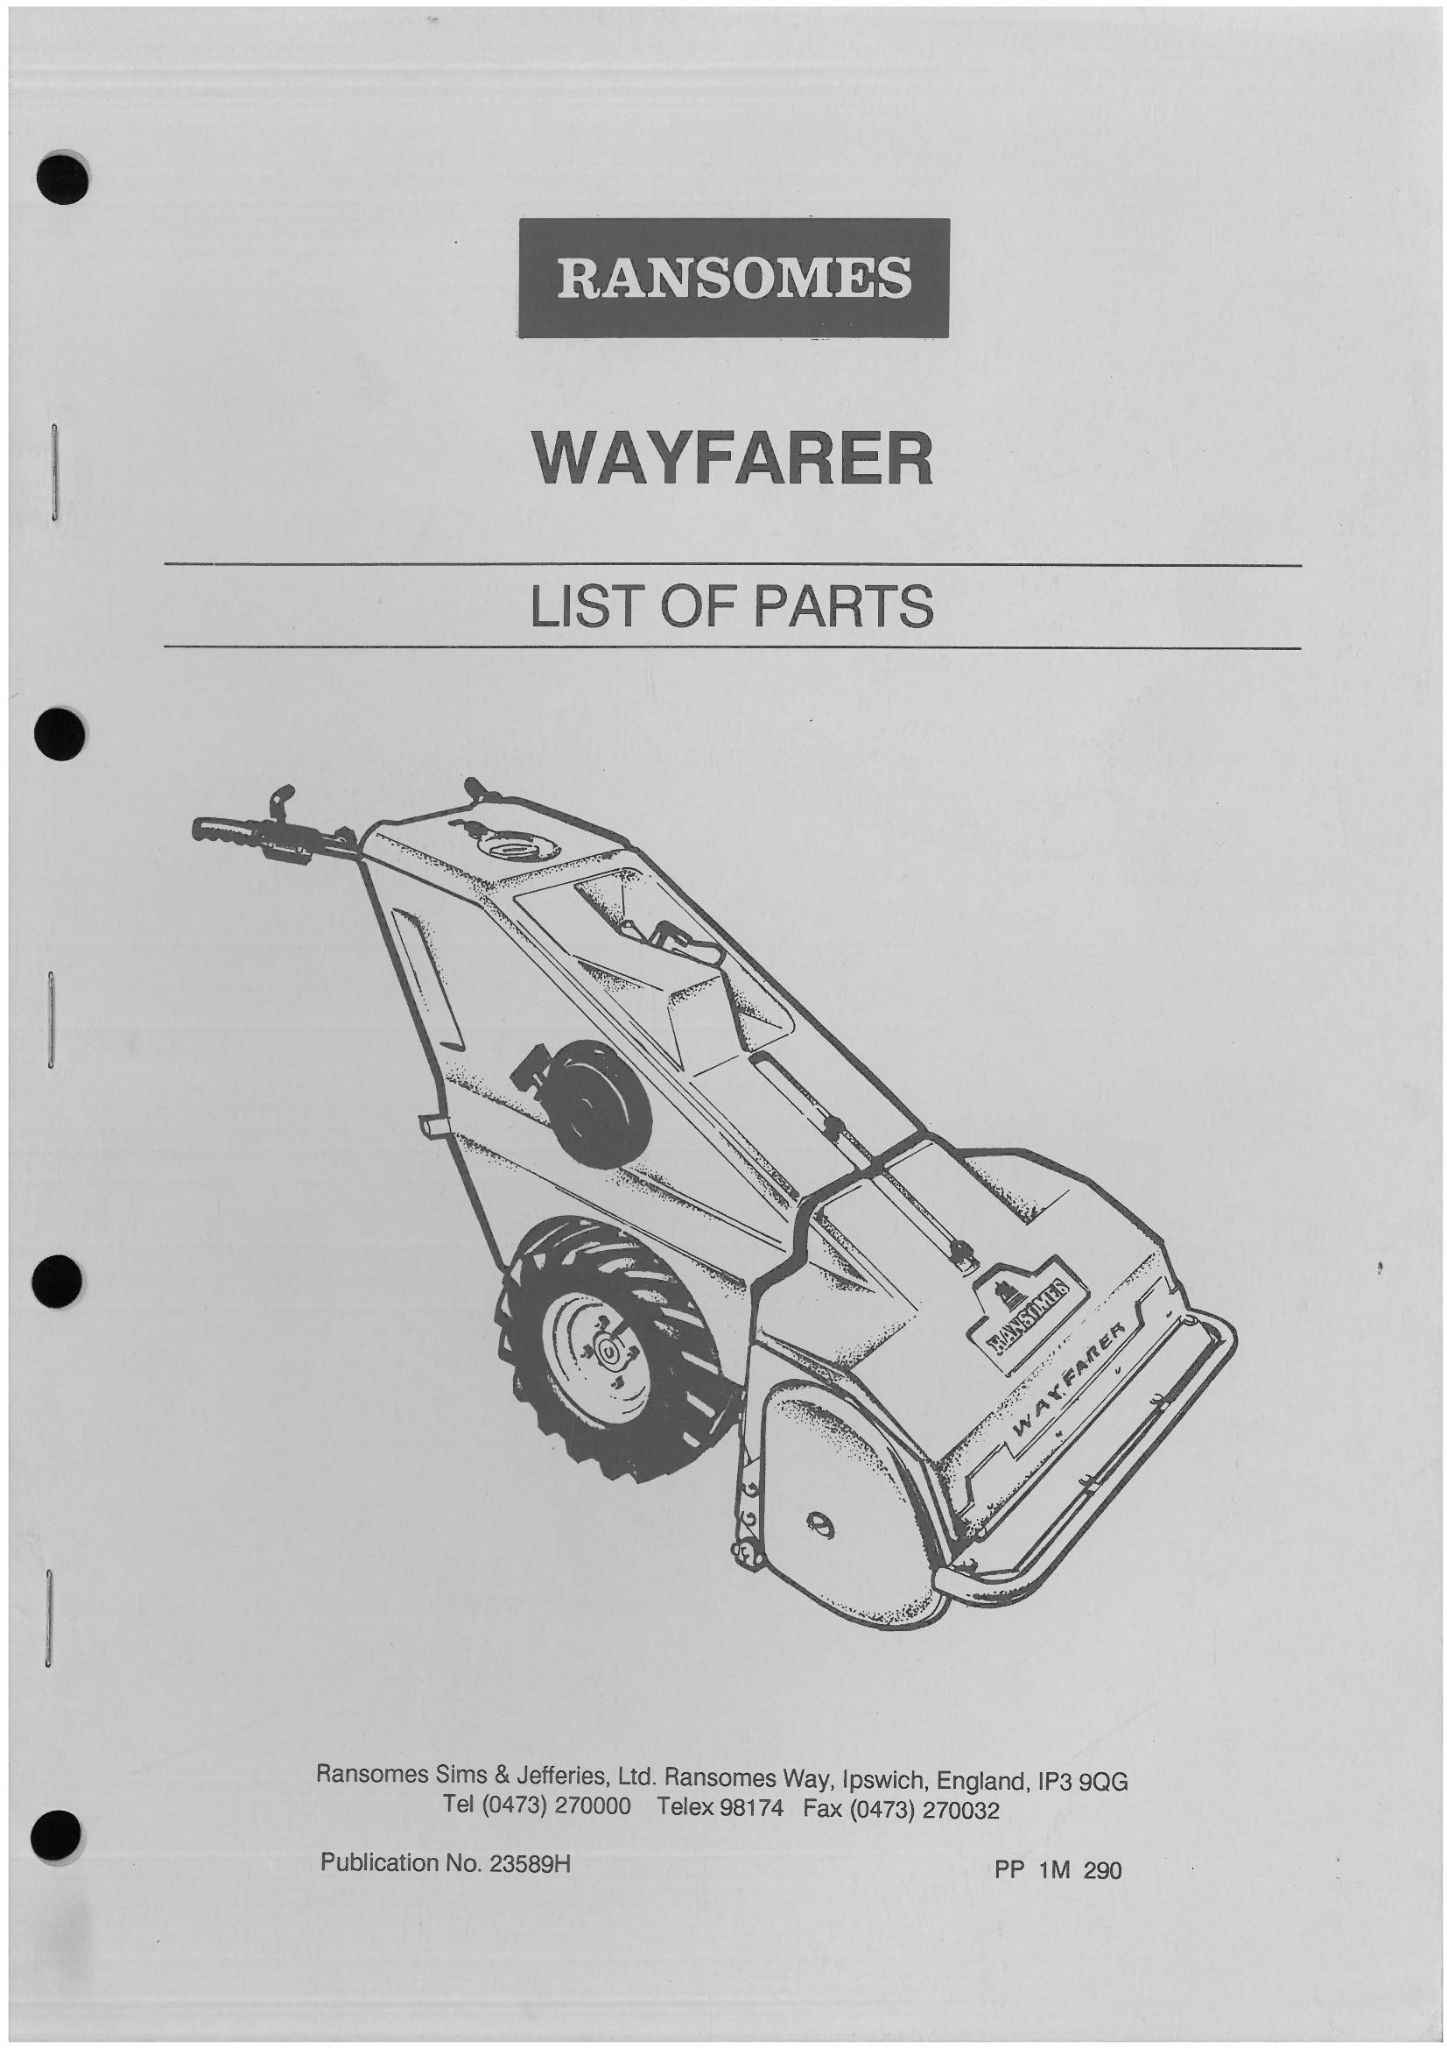 ransomes grass cutting machine wayfarer mower parts manual rh agrimanuals com ransomes mower parts list ransomes mower parts uk